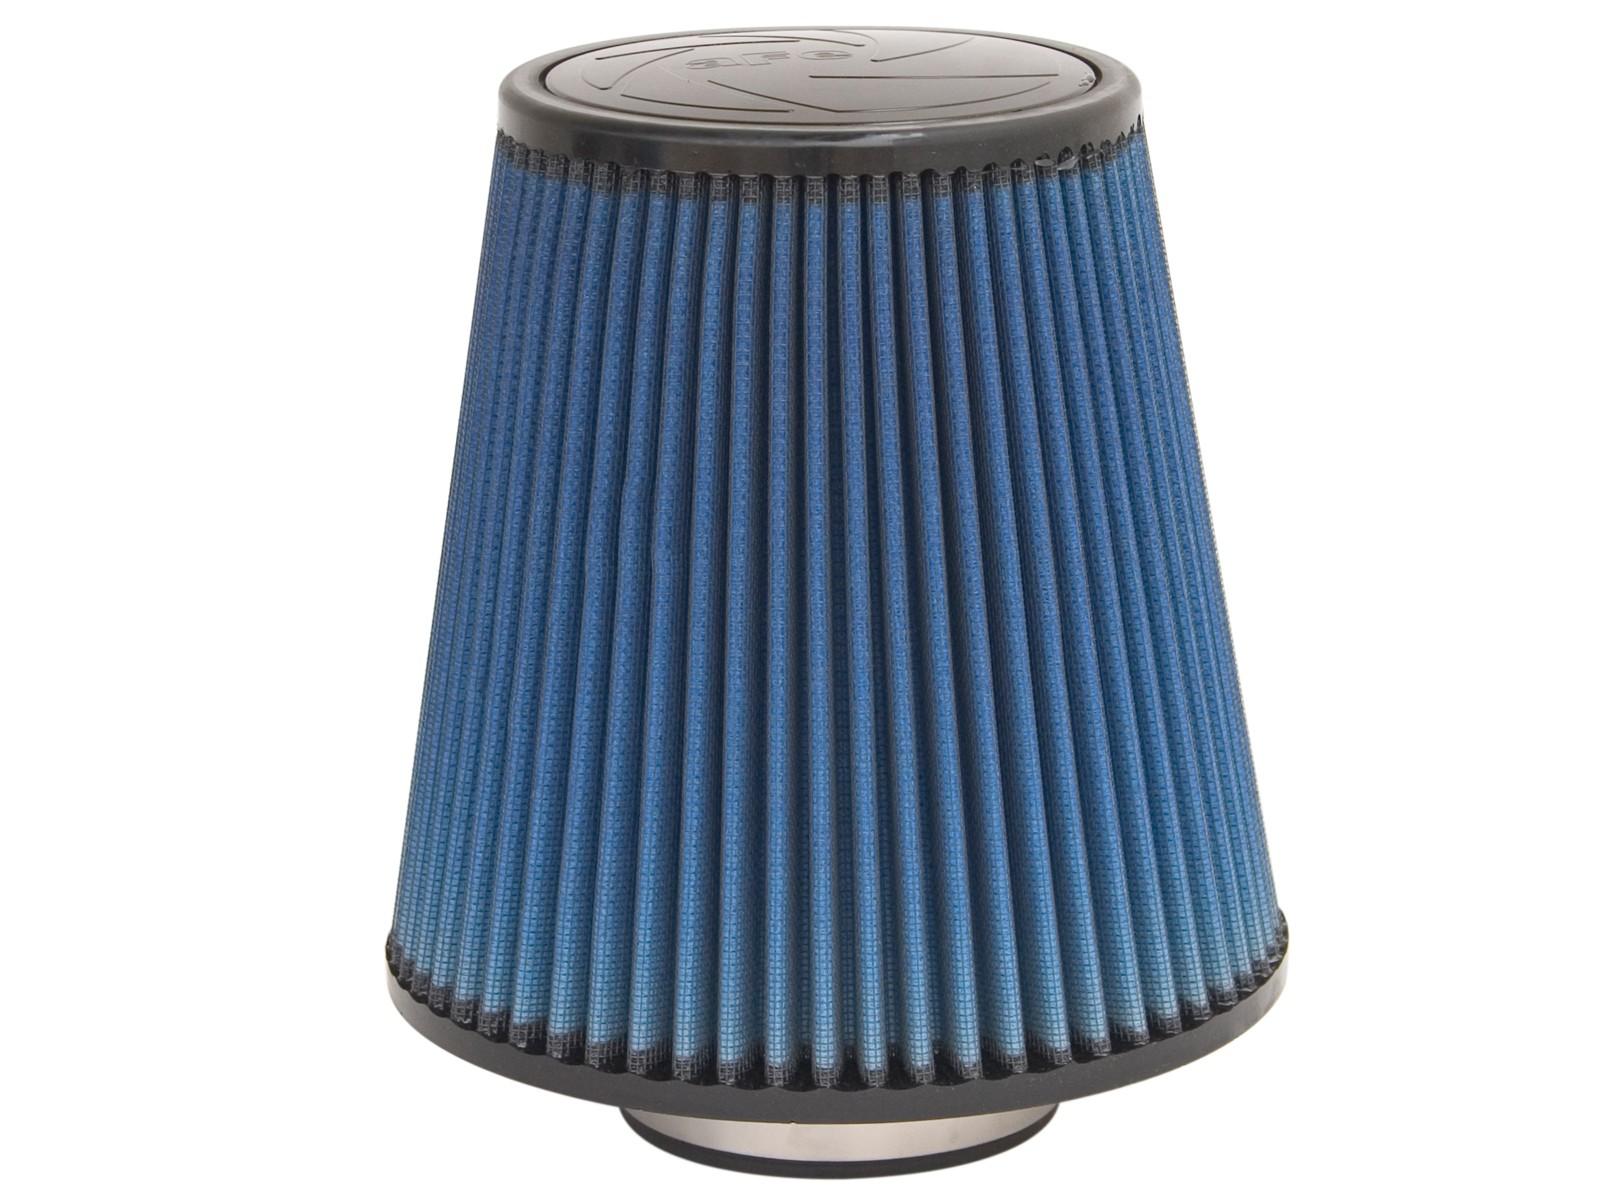 aFe POWER 24-90018 Magnum FLOW Pro 5R Air Filter